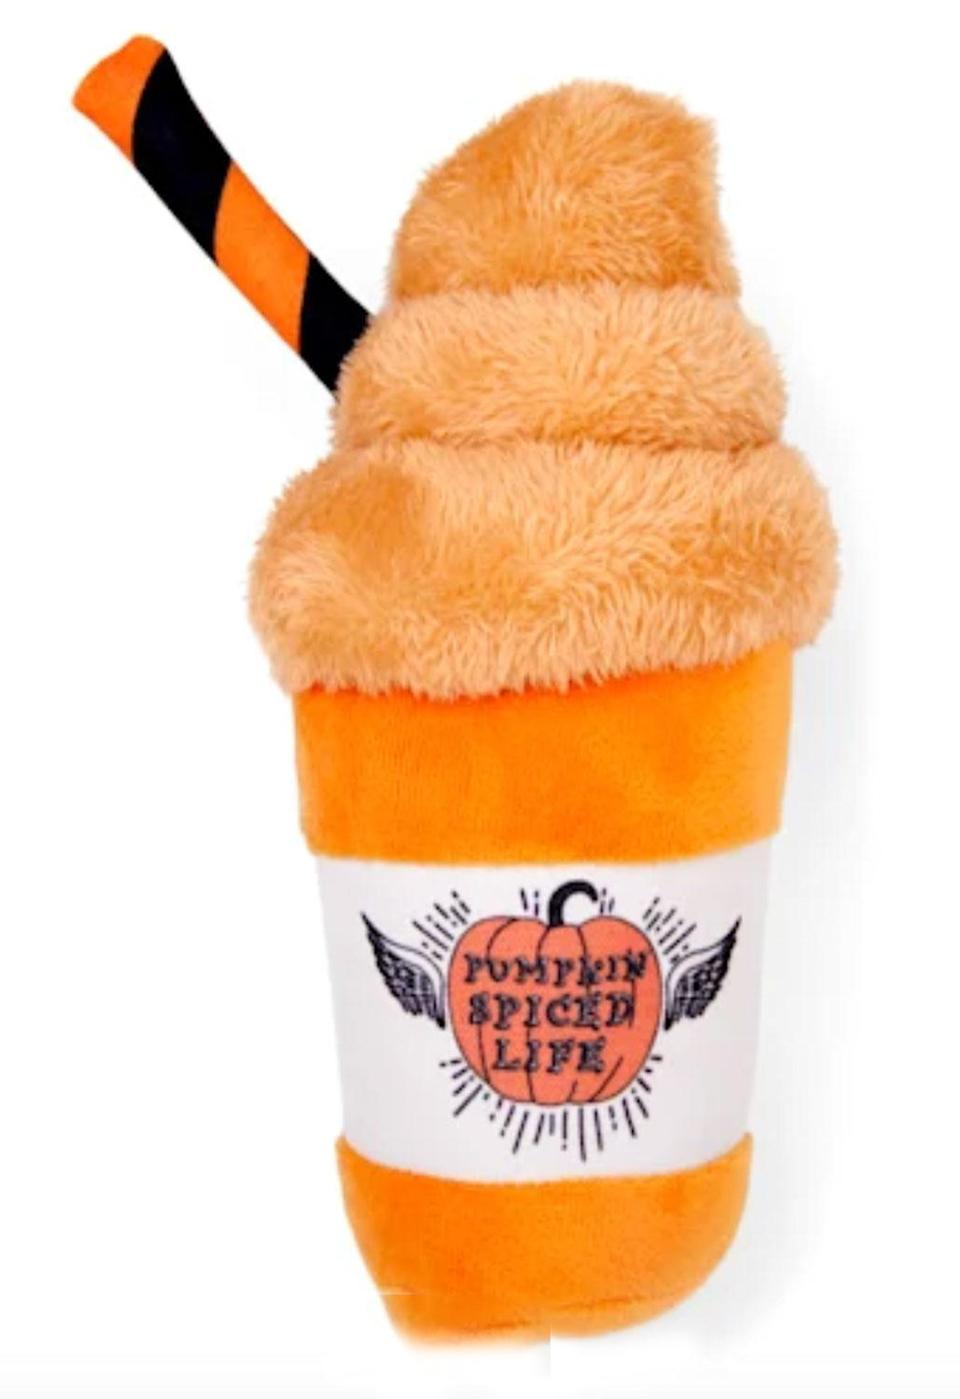 """<p>Dogs can always be a paw's reach away from a pumpkin spice latte with this seasonal toy. </p> <p><strong>Buy it!</strong> Bootique Pumpkin Spice Fiend Plush Dog Toy, $9.99; <a href=""""https://www.anrdoezrs.net/links/8029122/type/dlg/sid/PEO12GiftsforDogOwnersObsessedwithPumpkinSpiceandPoocheskbender1271PetGal12897998202109I/https://www.petco.com/shop/en/petcostore/product/bootique-pumpkin-spice-fiend-plush-dog-toy"""" rel=""""sponsored noopener"""" target=""""_blank"""" data-ylk=""""slk:Petco.com"""" class=""""link rapid-noclick-resp"""">Petco.com</a></p>"""